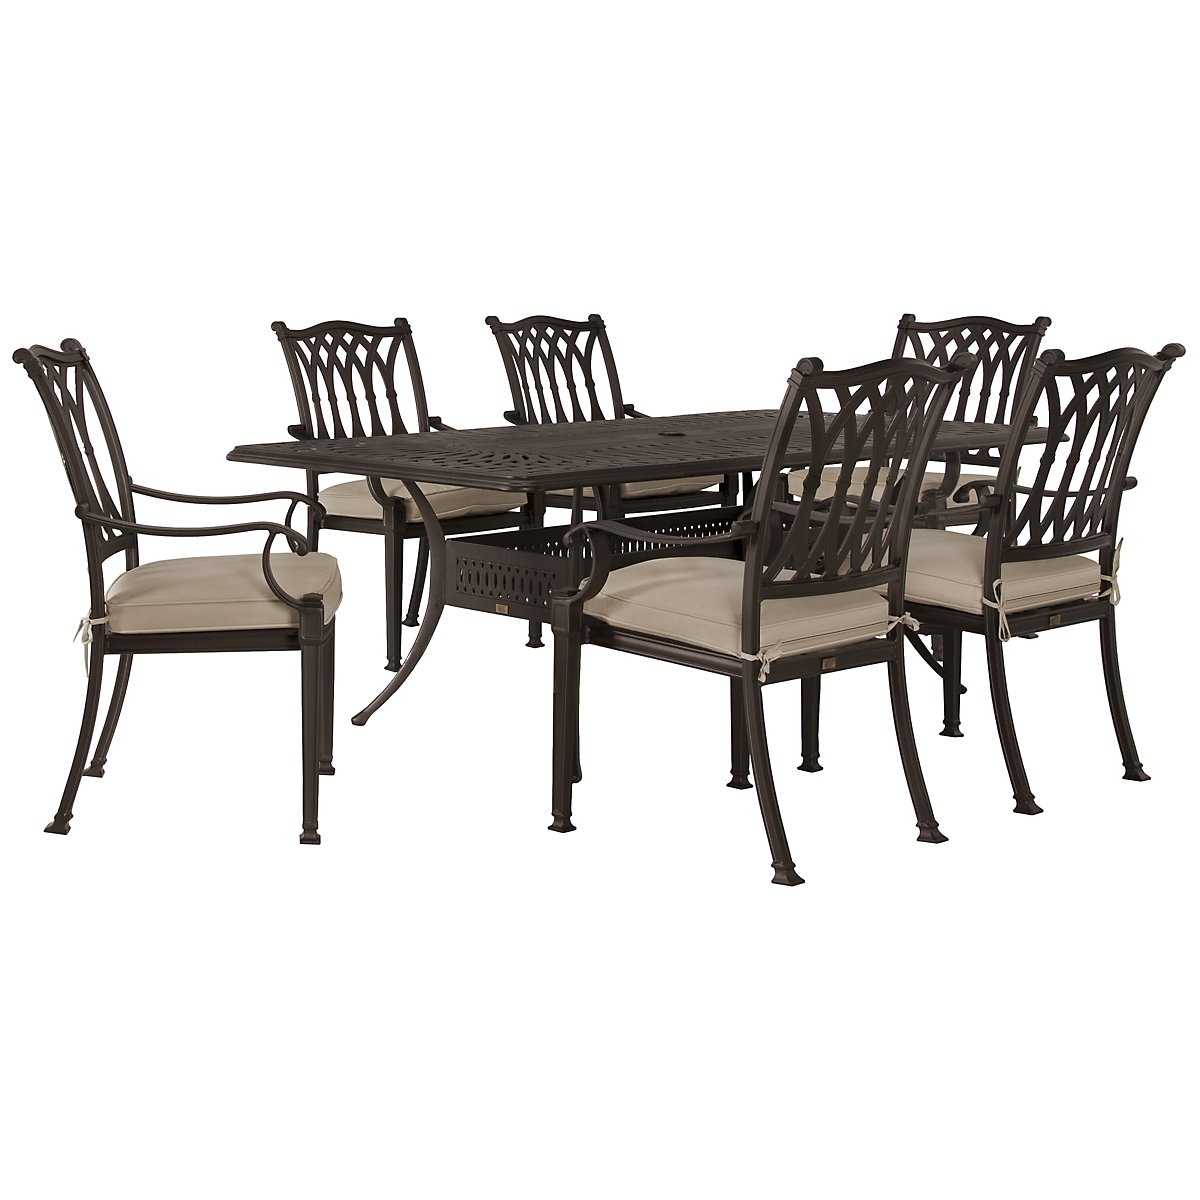 "Primera Dark Tone 87"" Rectangular Table & 4 Cushioned Chairs"